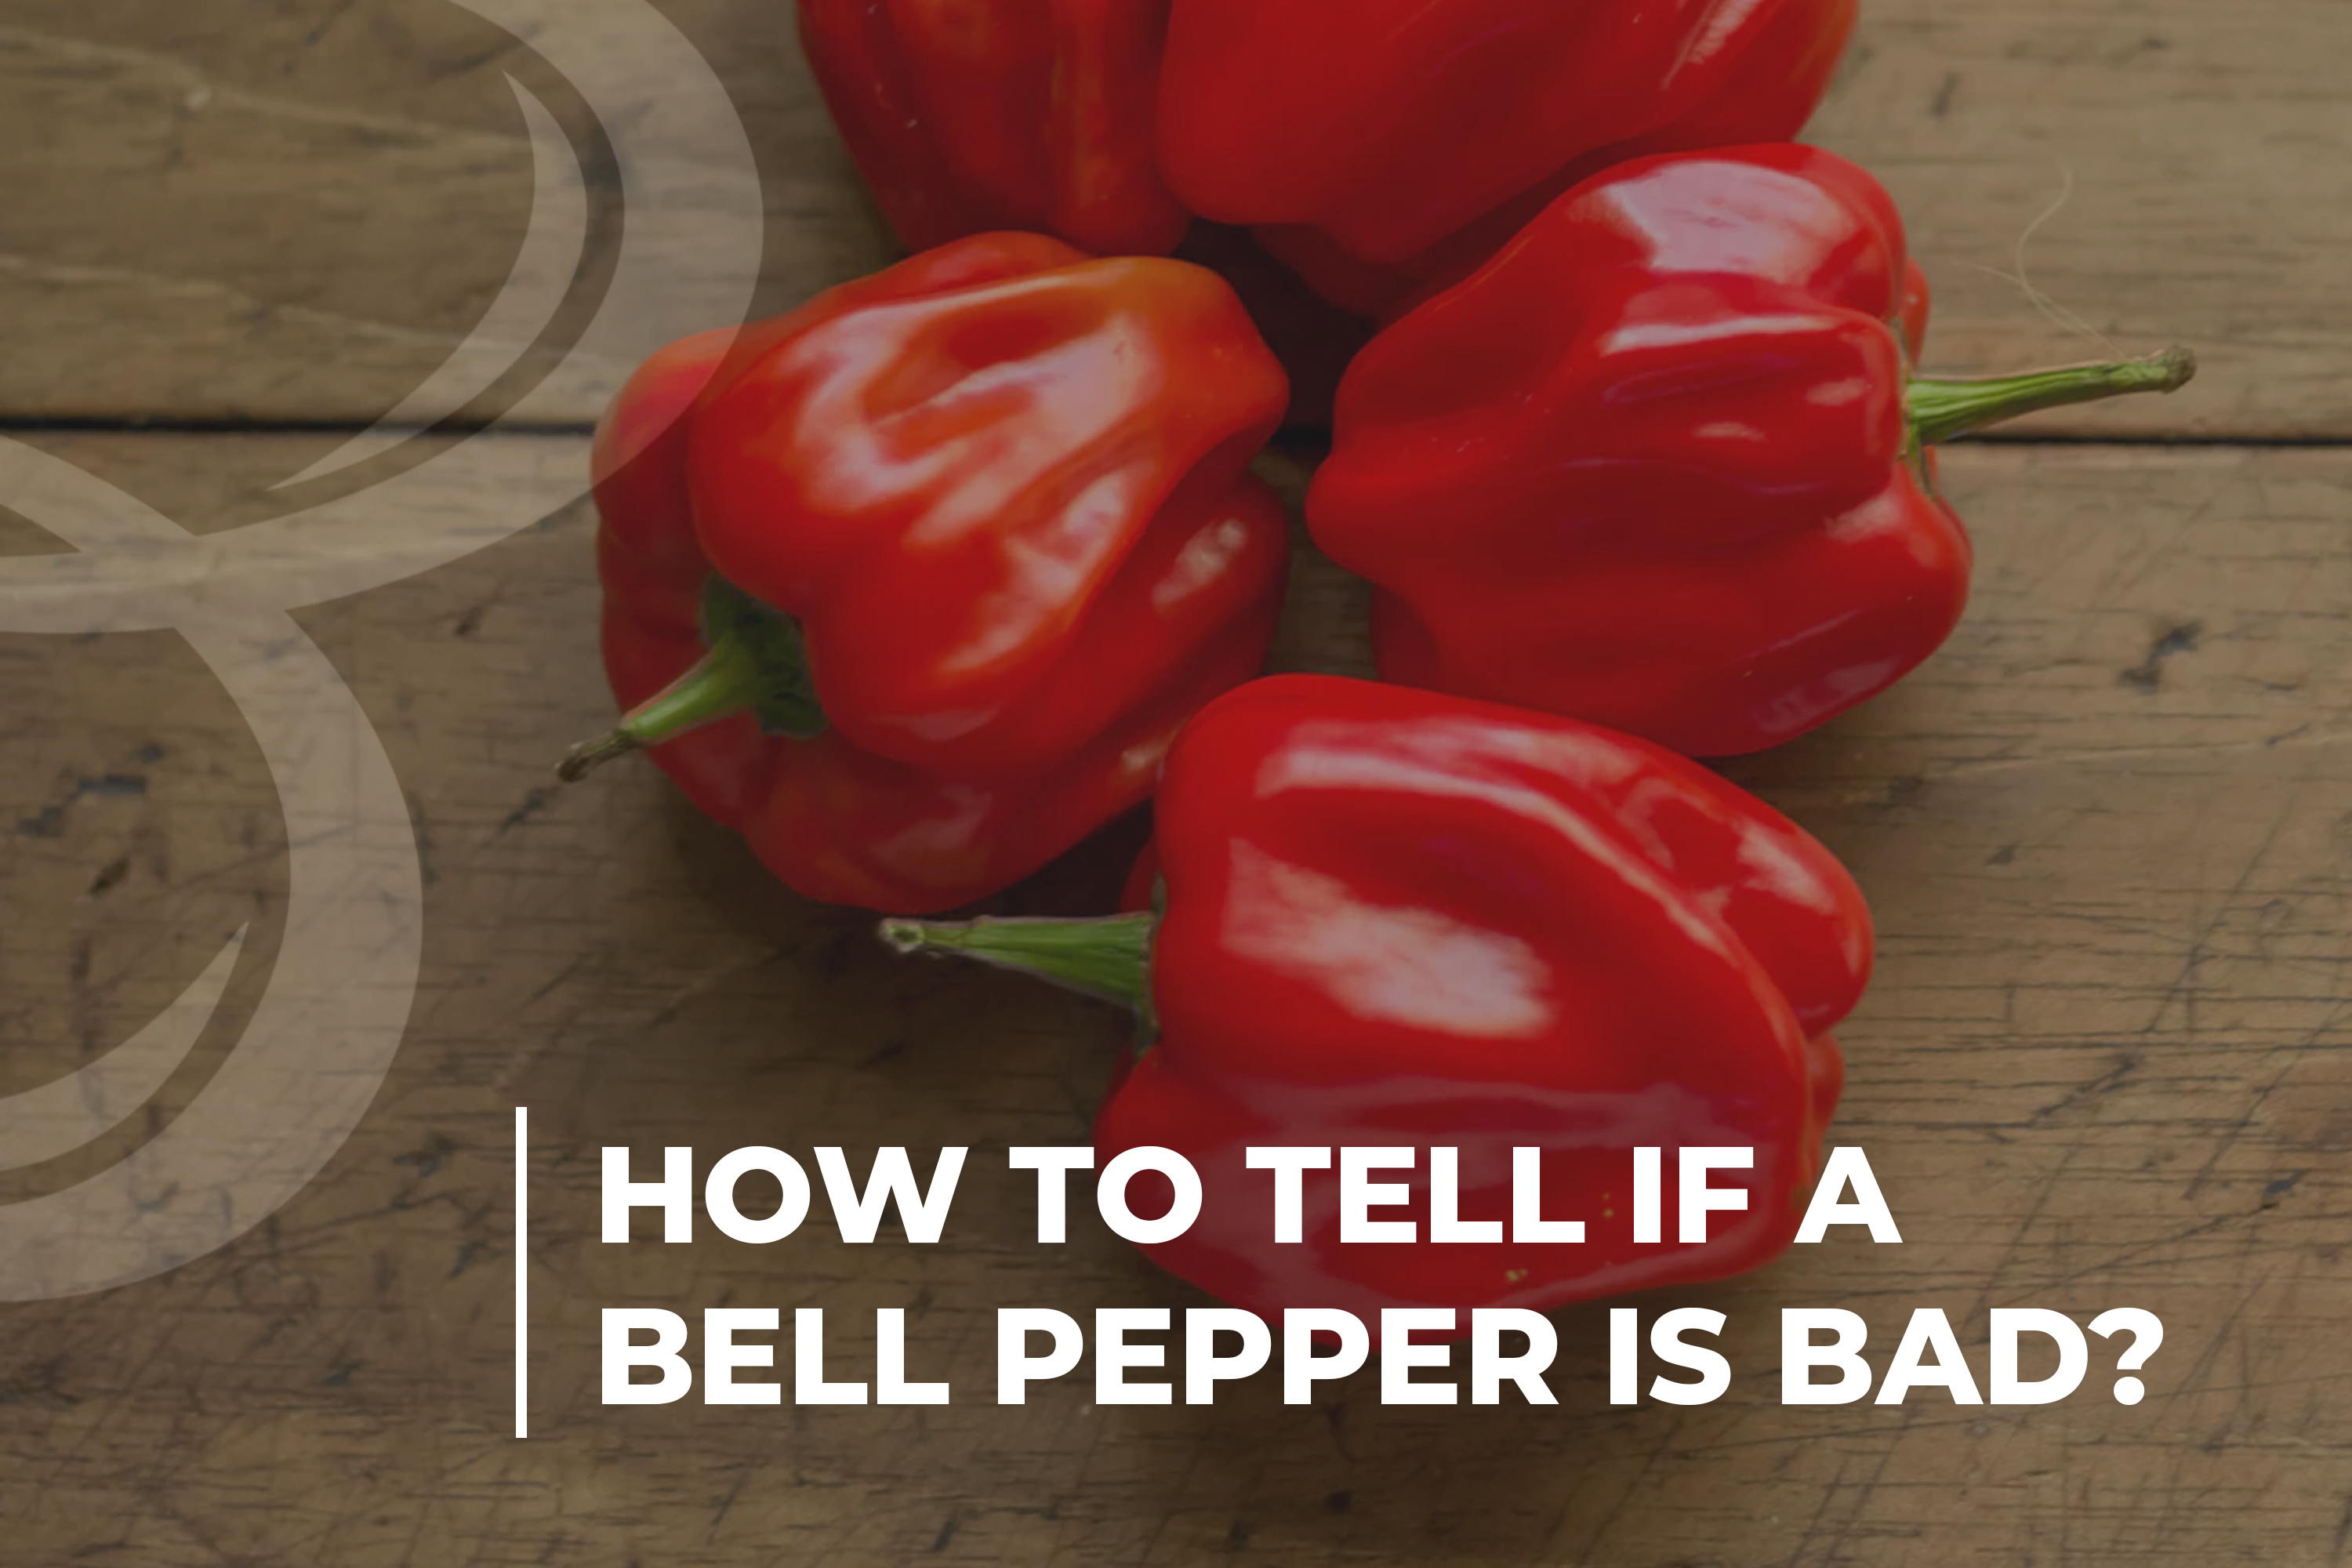 How to tell if a bell pepper is bad